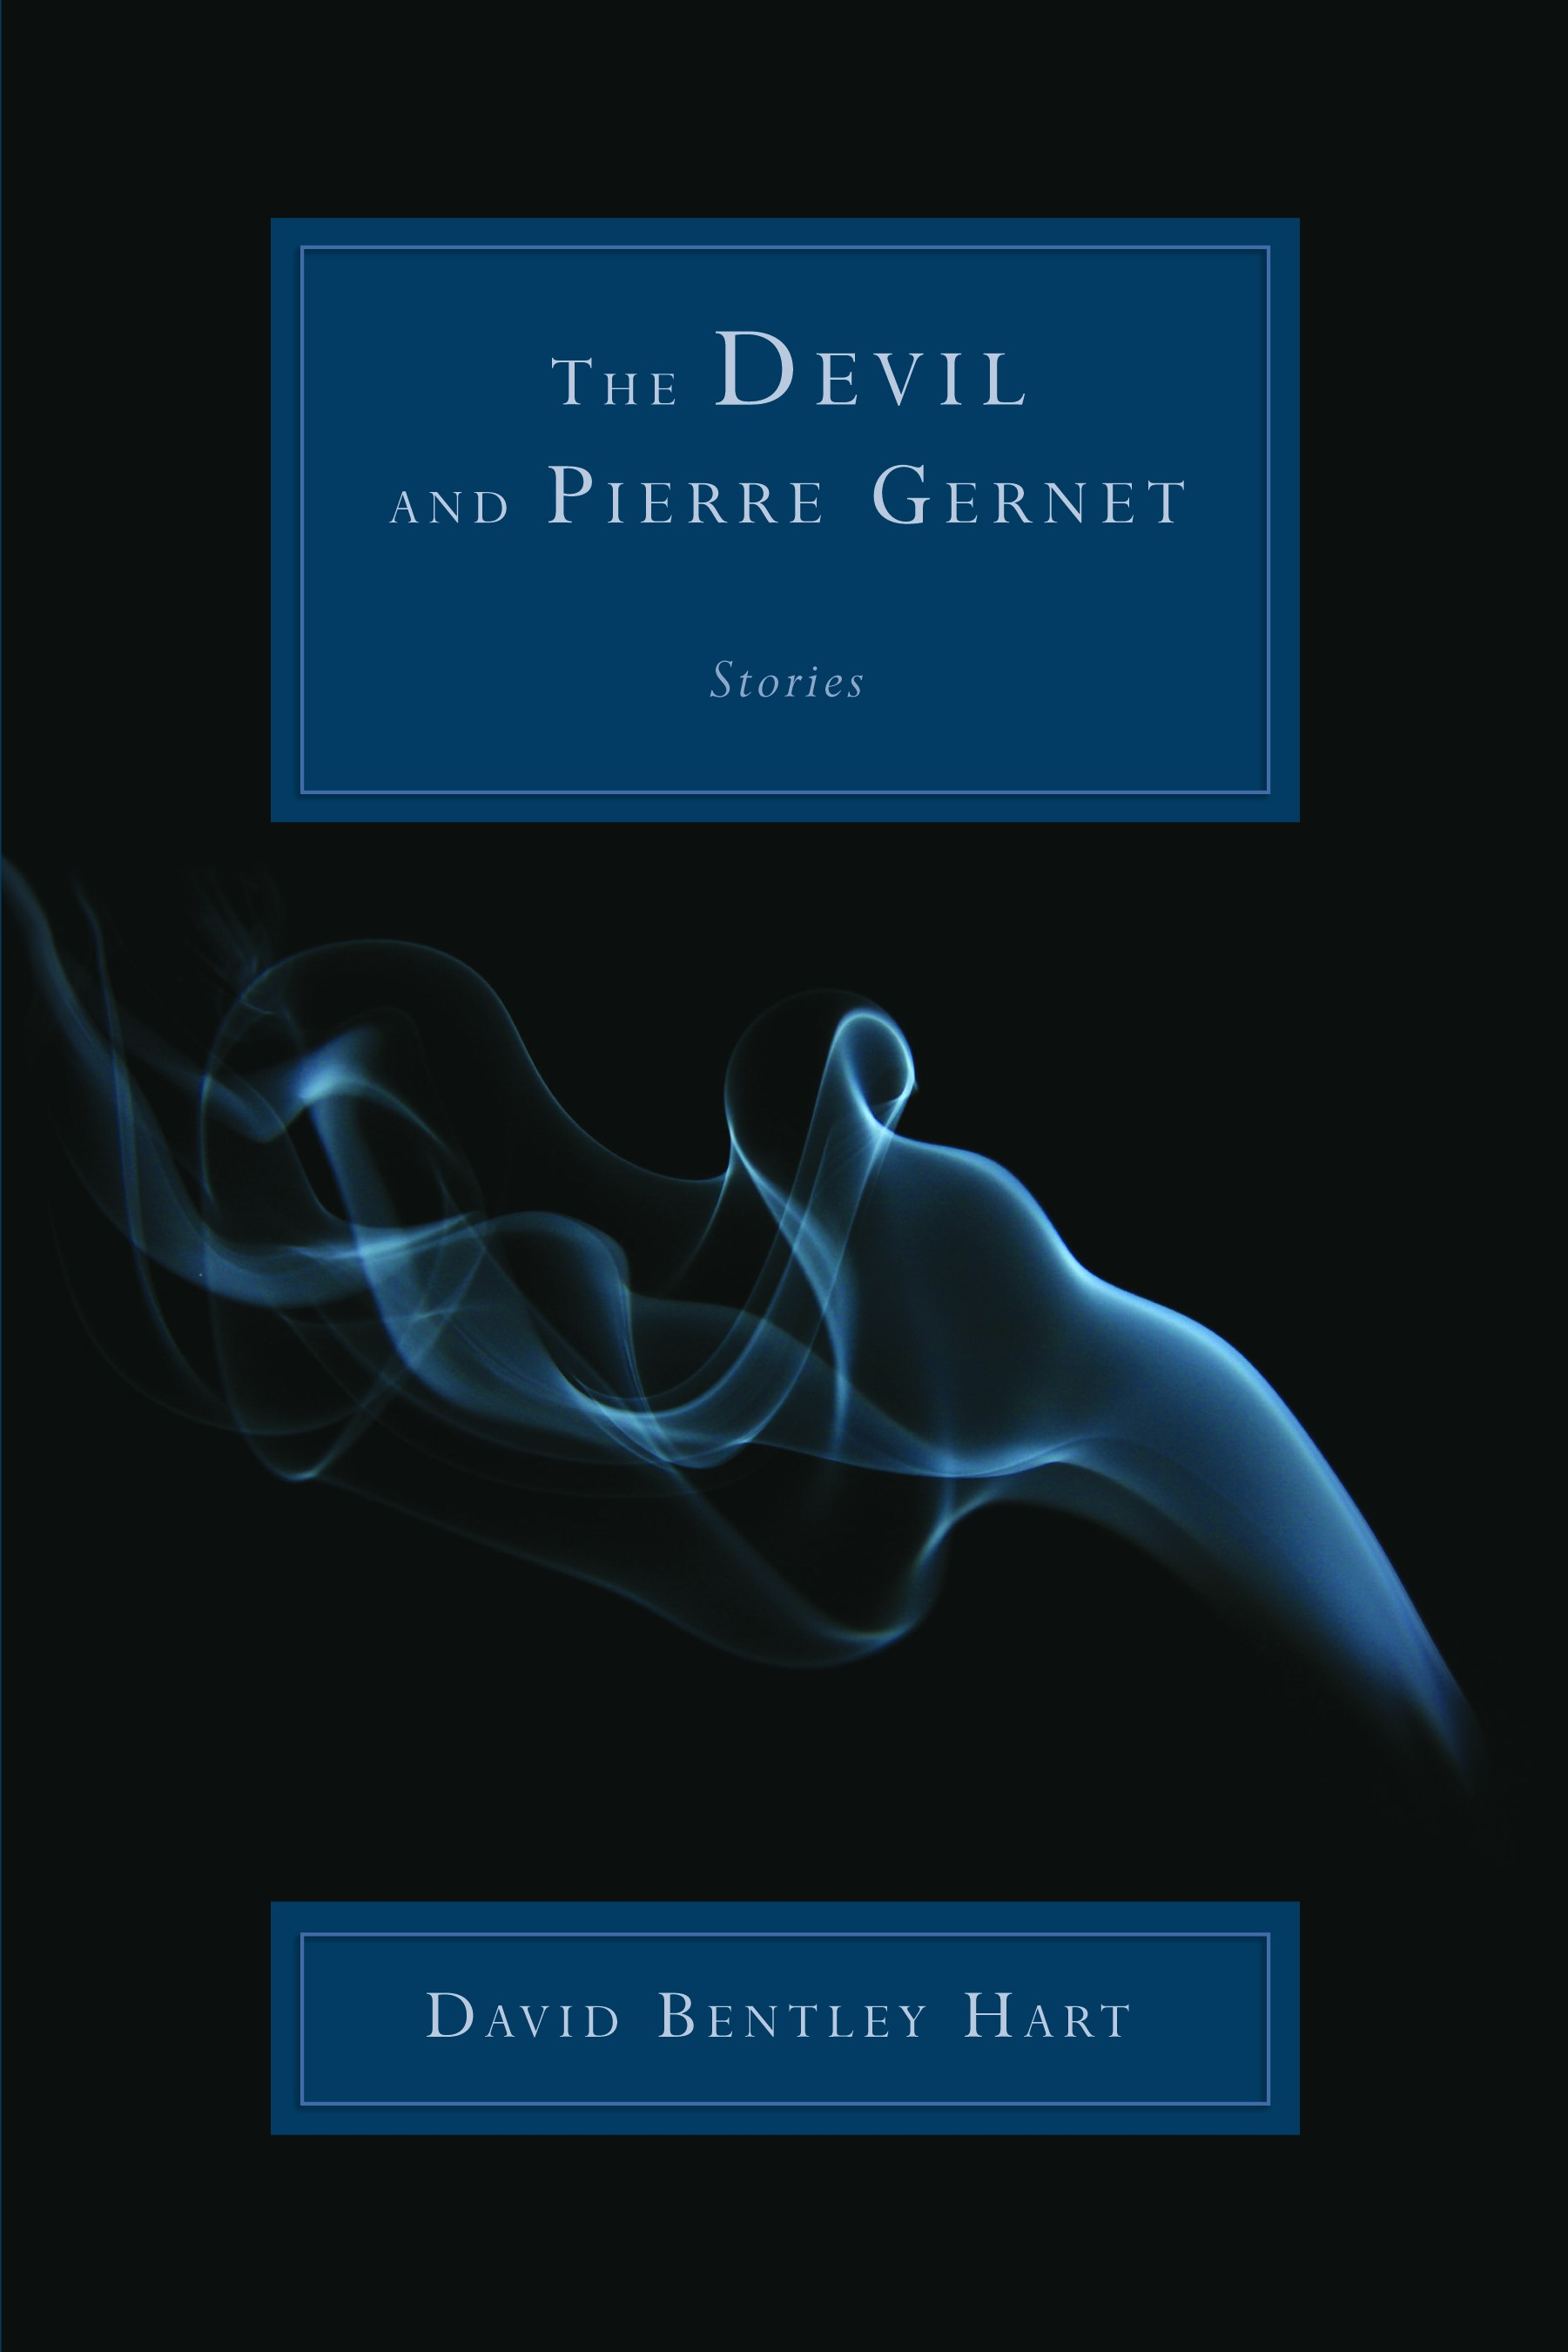 The Devil and Pierre Gernet